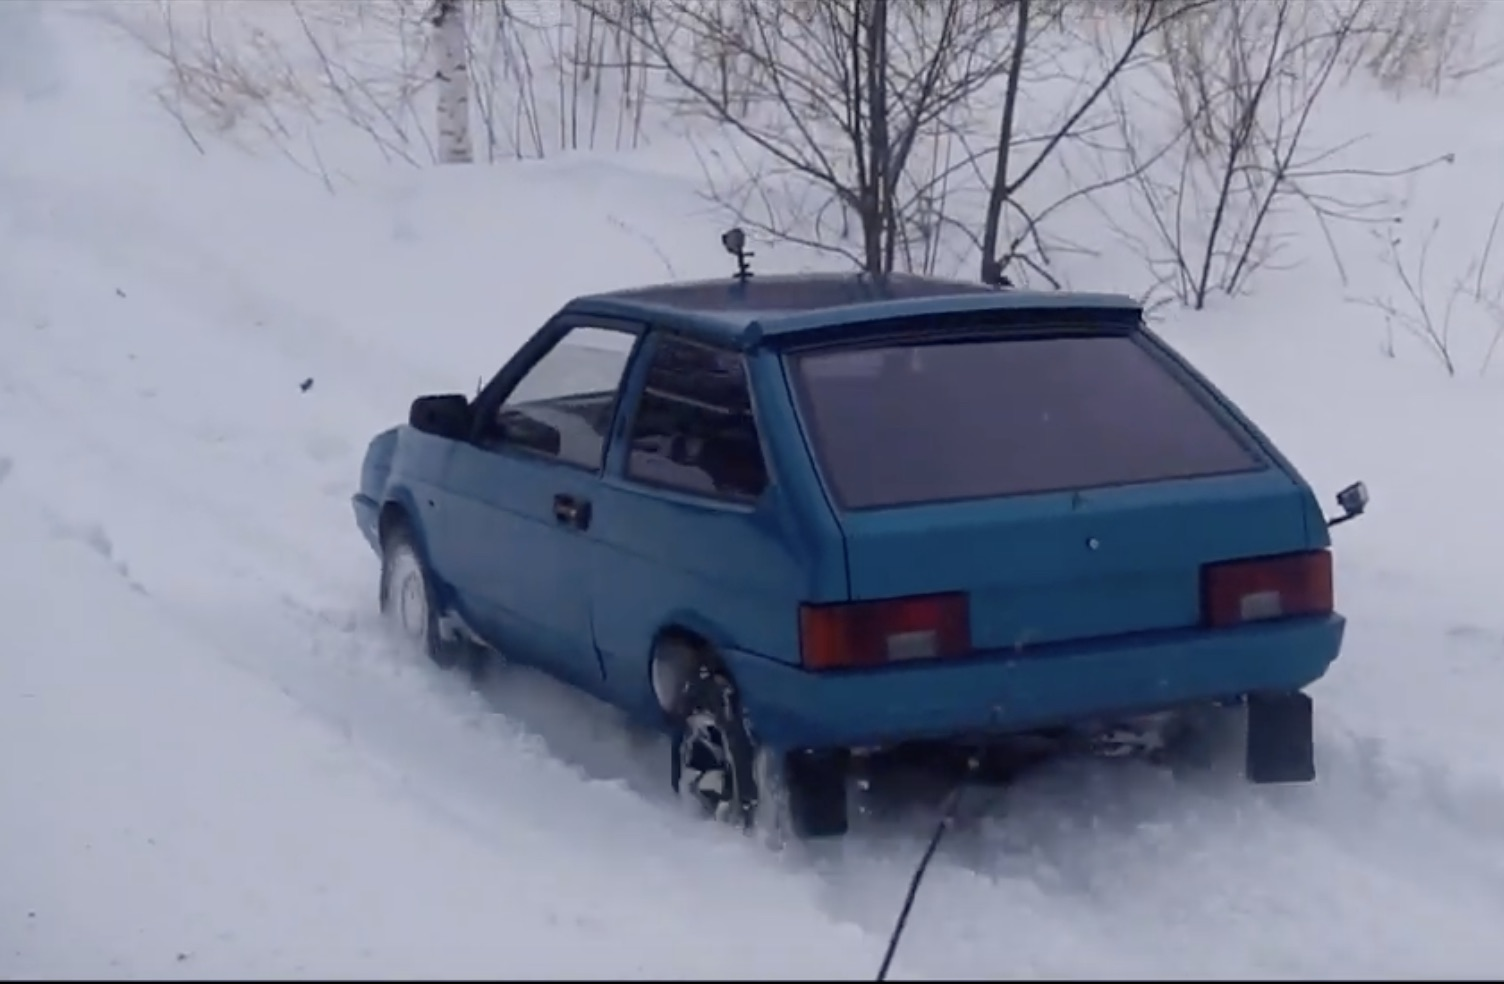 Homegrown Outback: Converting A Lada To All-Wheel-Drive The Gearhead Way!